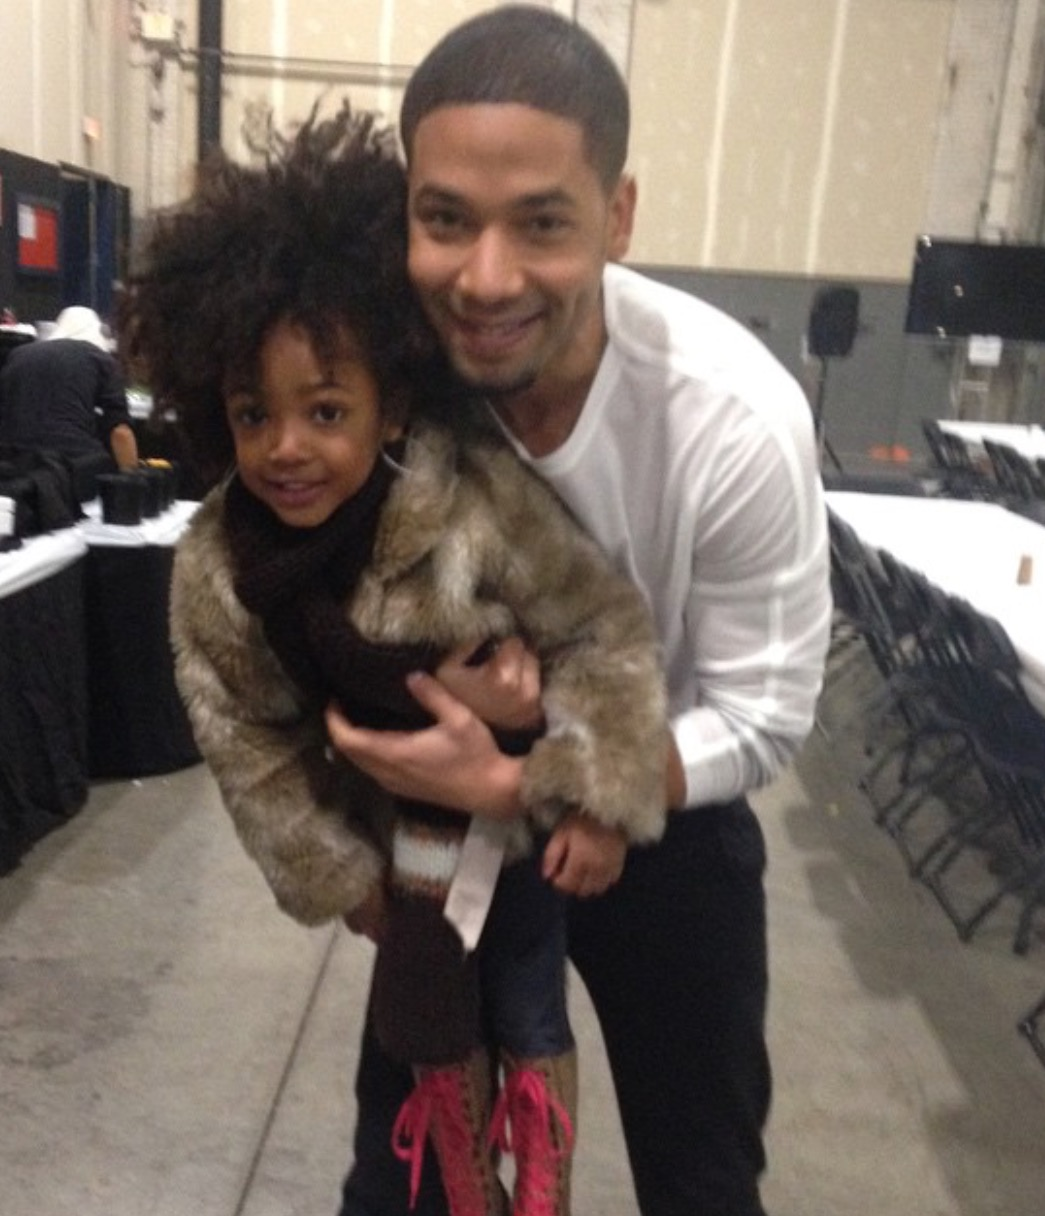 Leah Jeffries with actor, Jussie Smollett who plays Jamal Lyon on Empire.